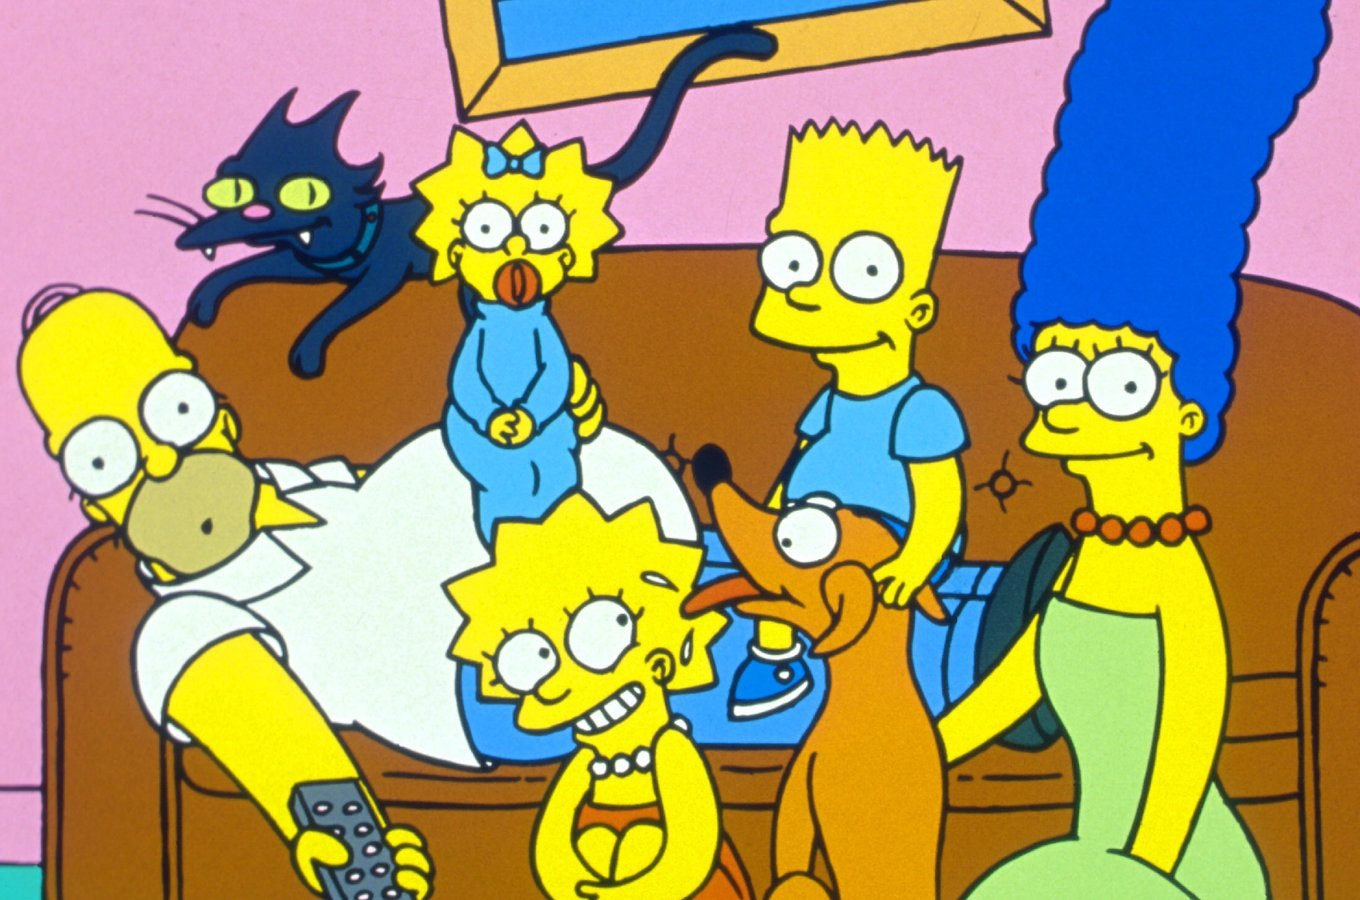 28simpsons videoSixteenByNineJumbo1600 e1615995404869 30 Things You Didn't Know About The Simpsons